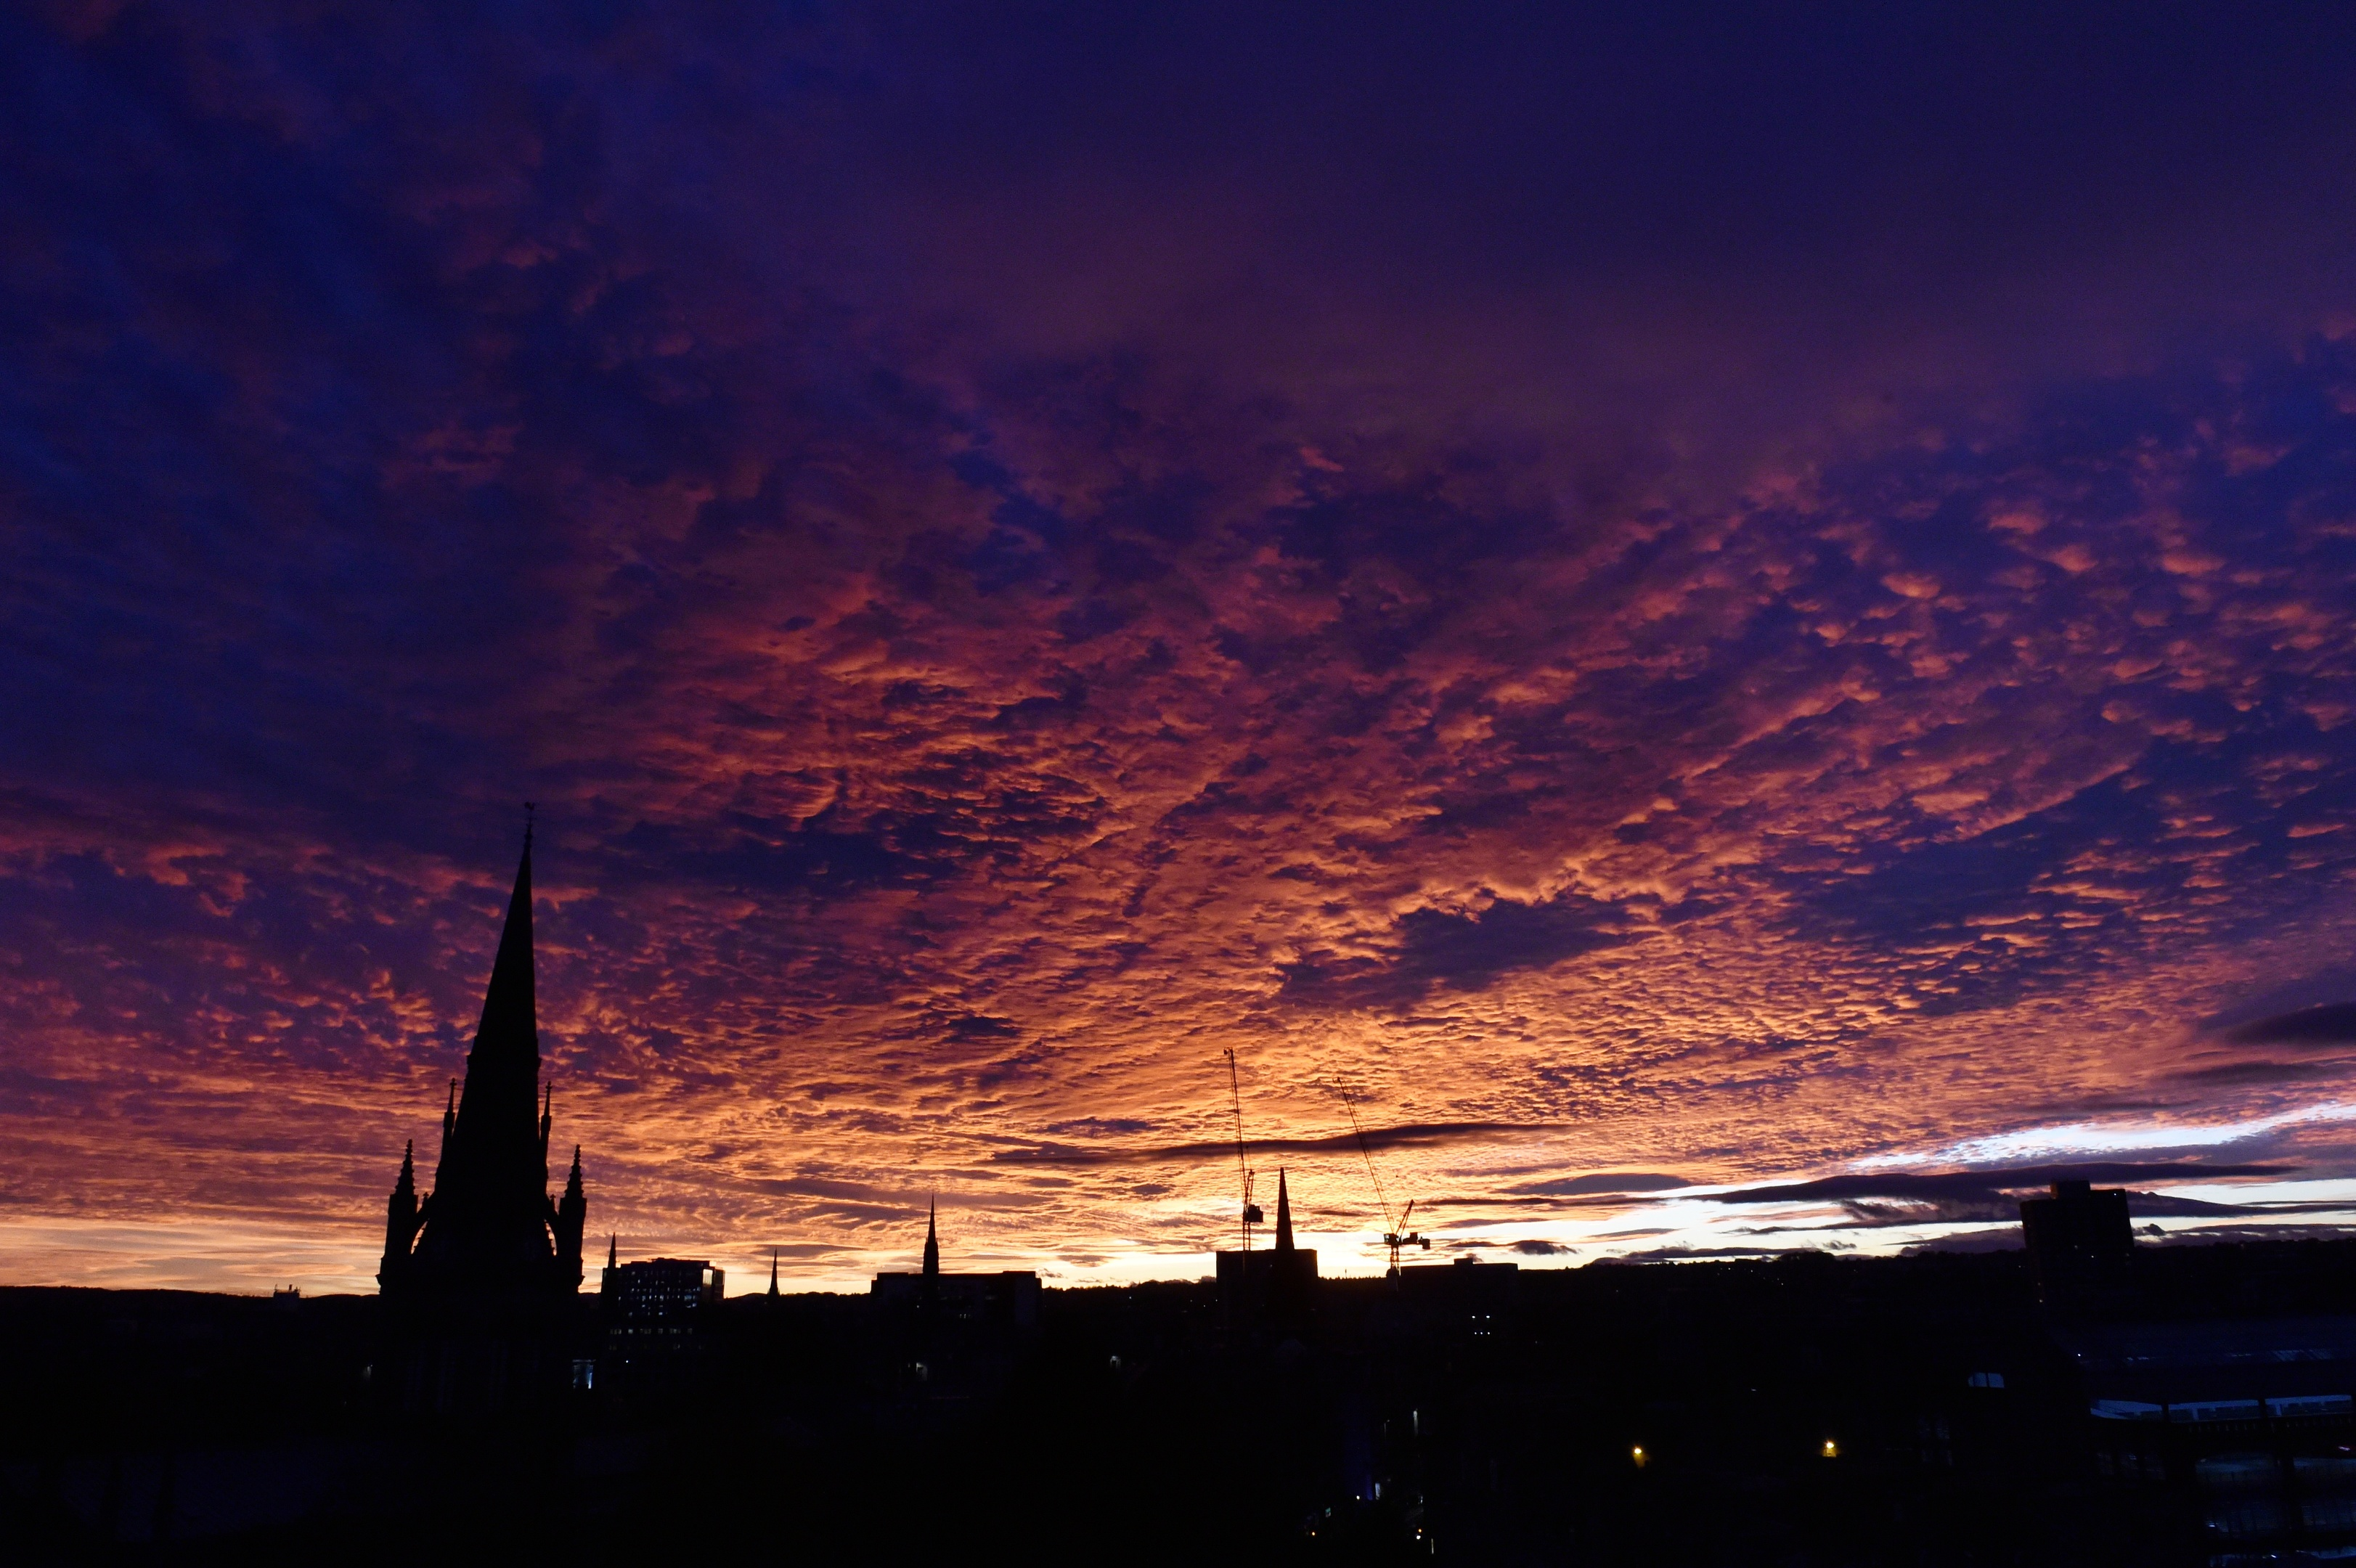 October 24th's incredible sunset seen from the Press and Journal's offices in Marischal Square.